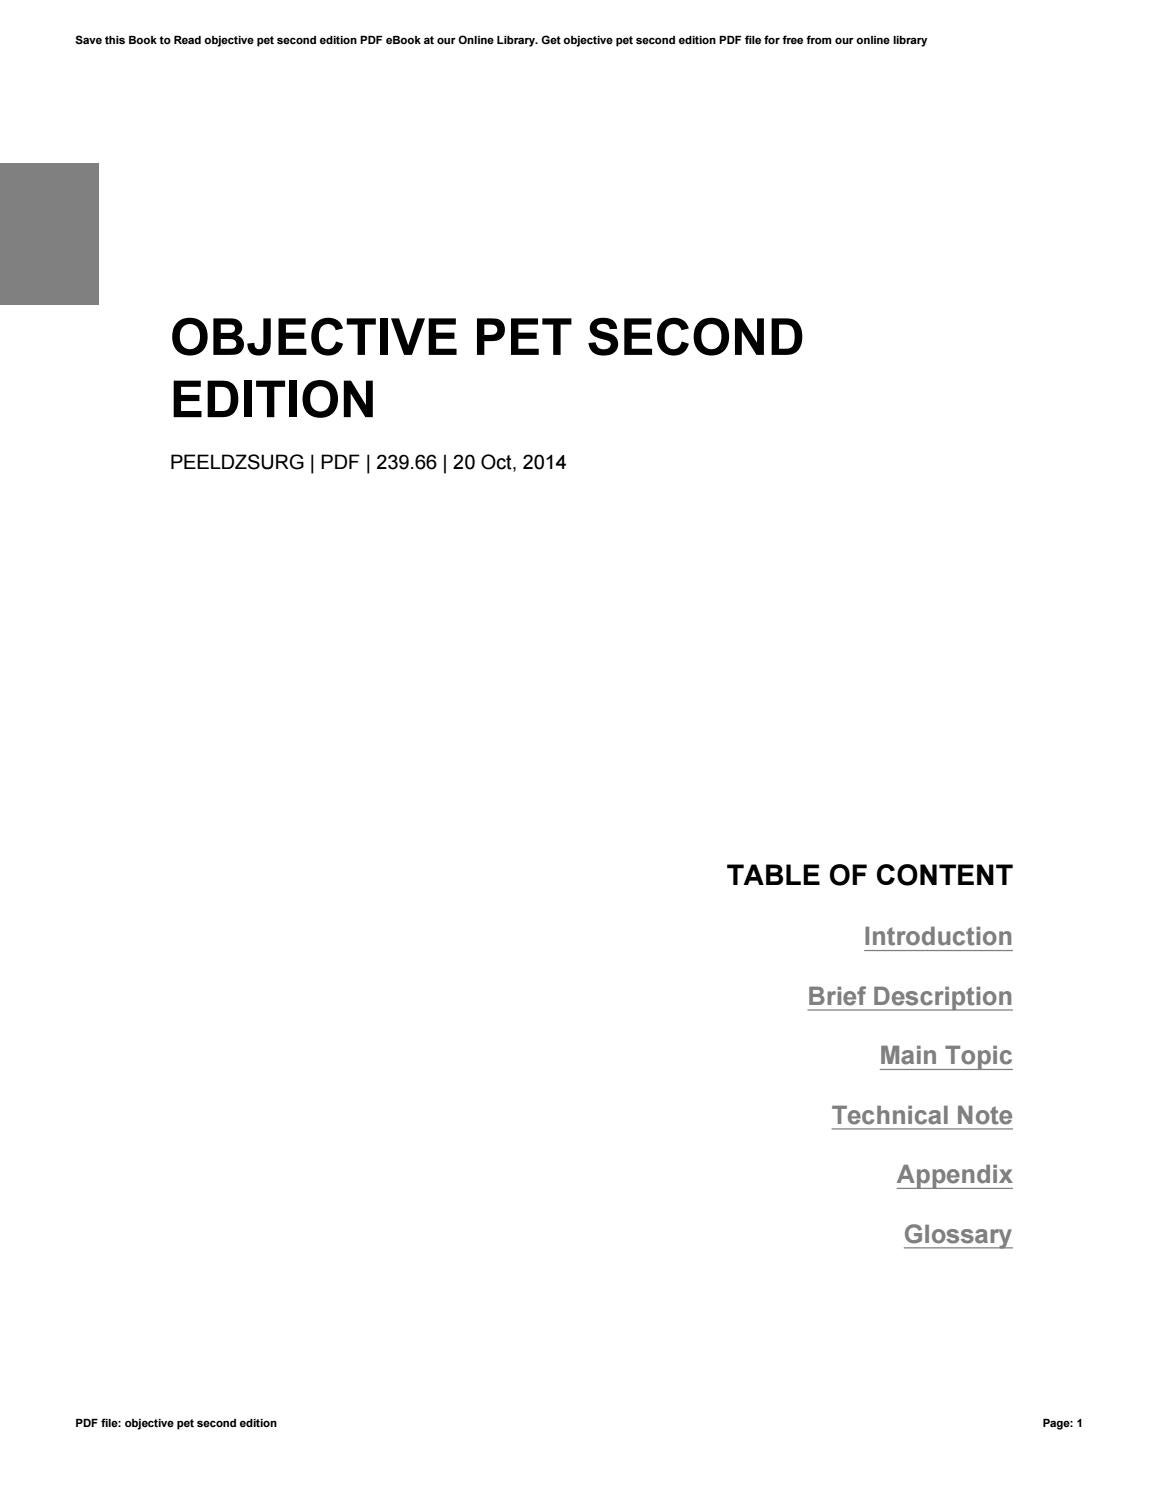 Objective pet second edition by maja78thama - issuu